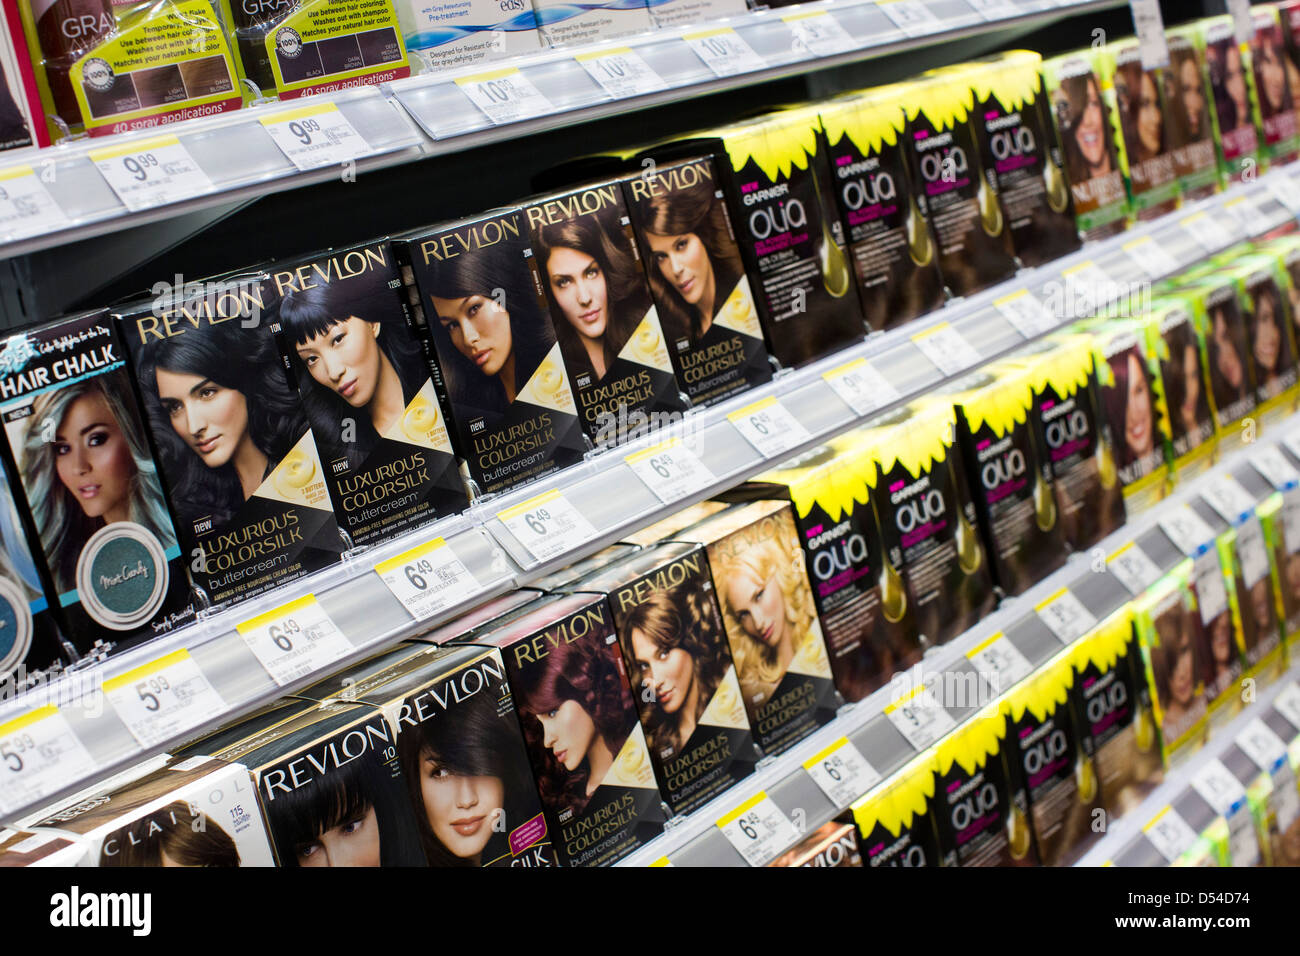 Revlon and Garnier hair dye products on display at a Walgreens Flagship store in downtown Washington, DC. - Stock Image